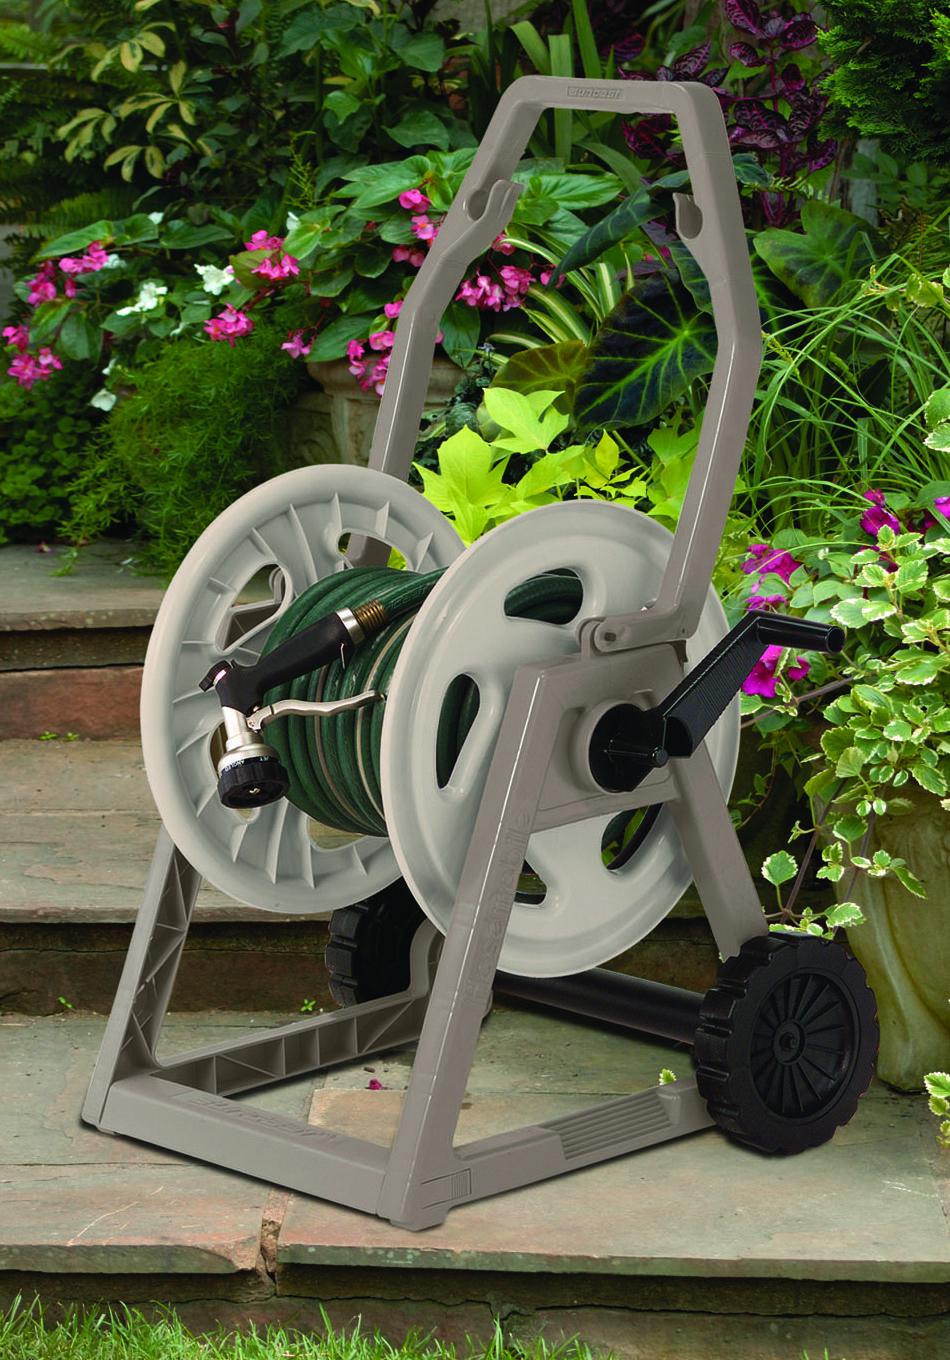 Put This USA Made 225u0027 Hose Reel In Your Garden! ...